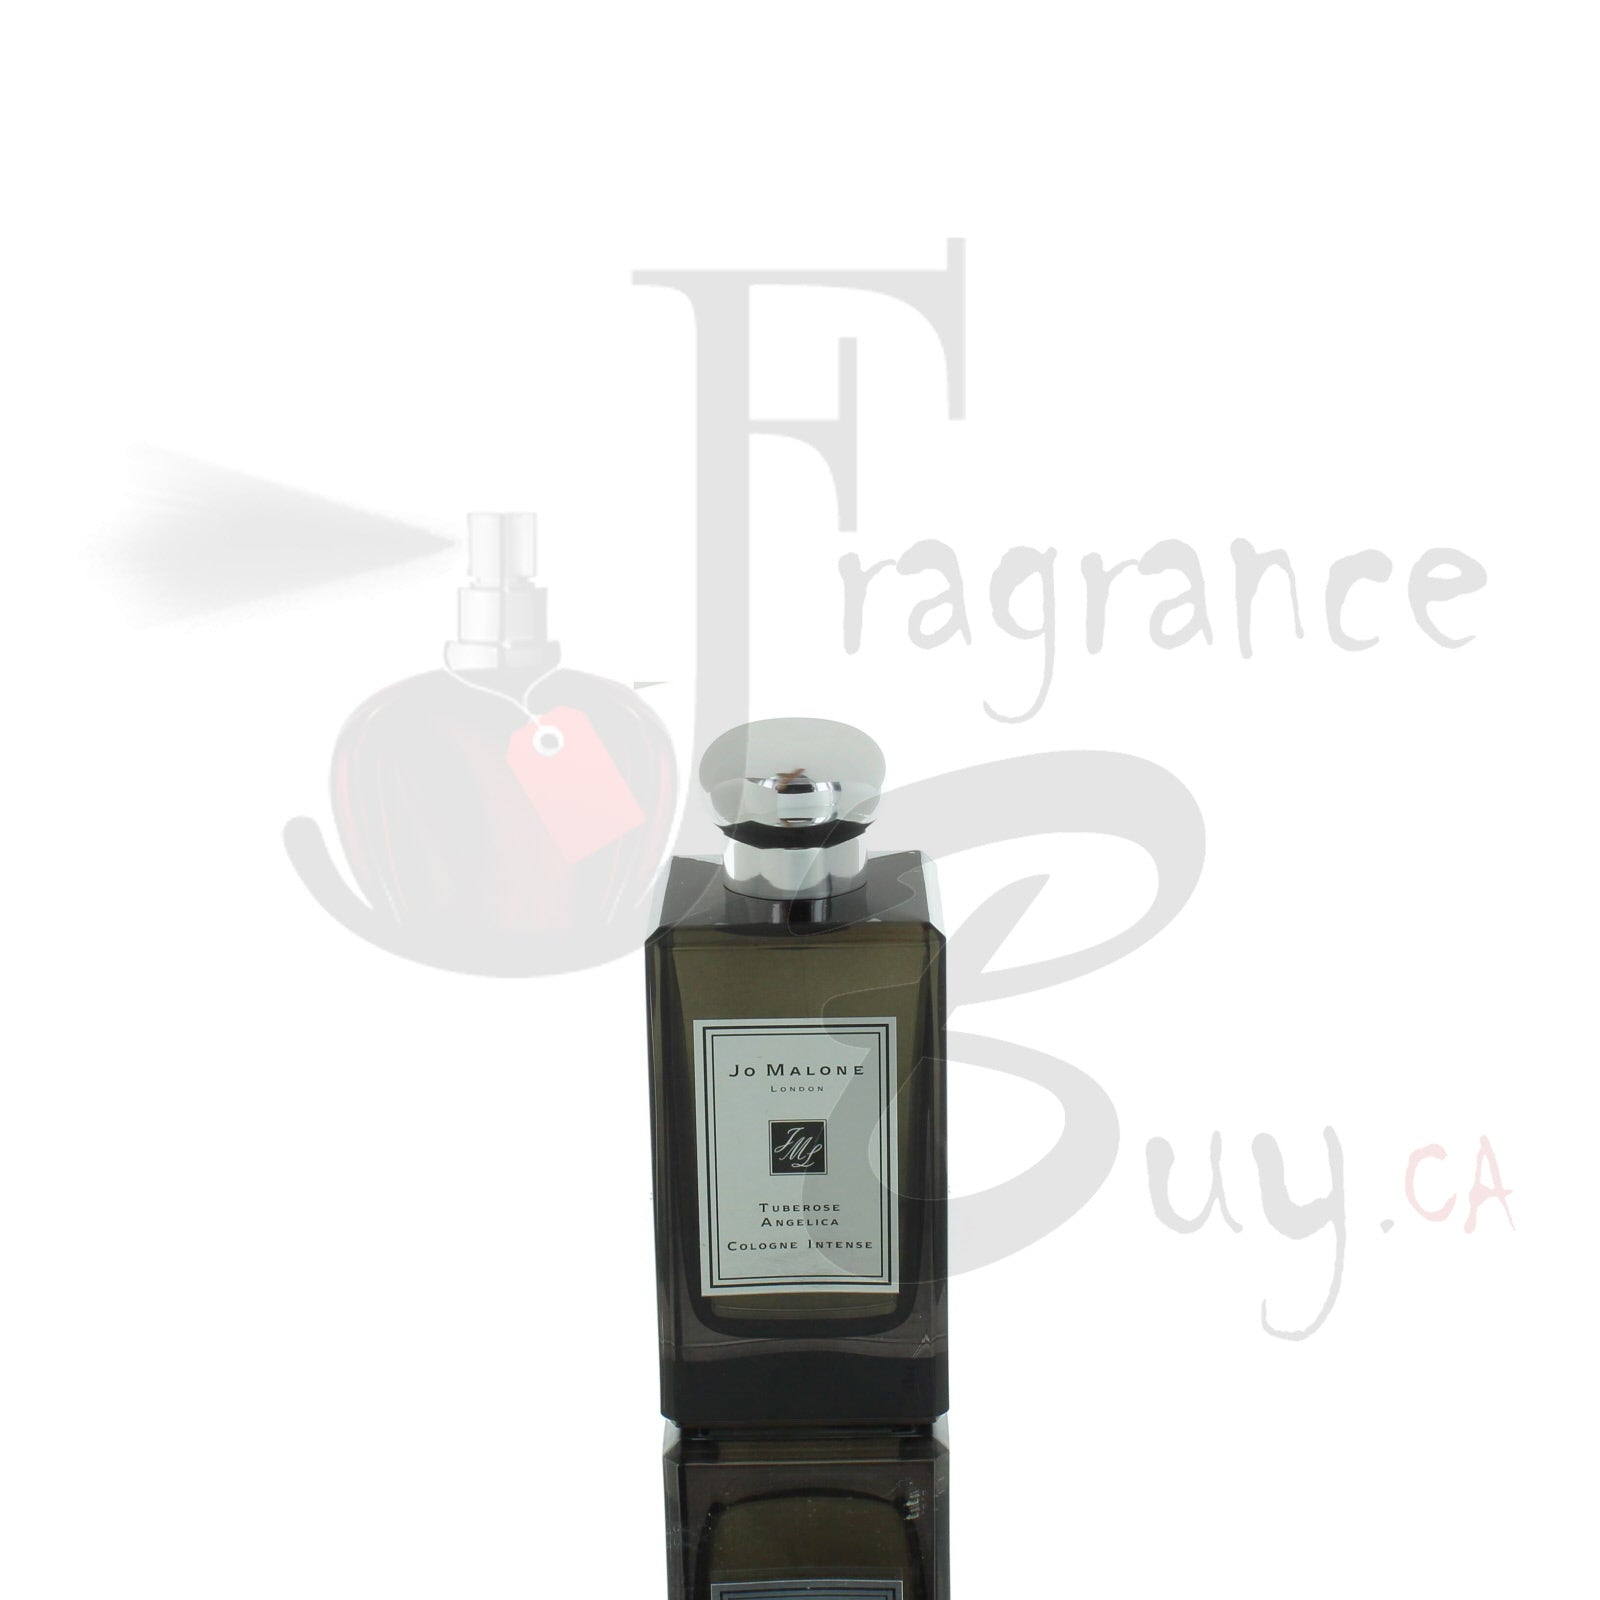 Jo Malone Tuberose Angelica For Woman